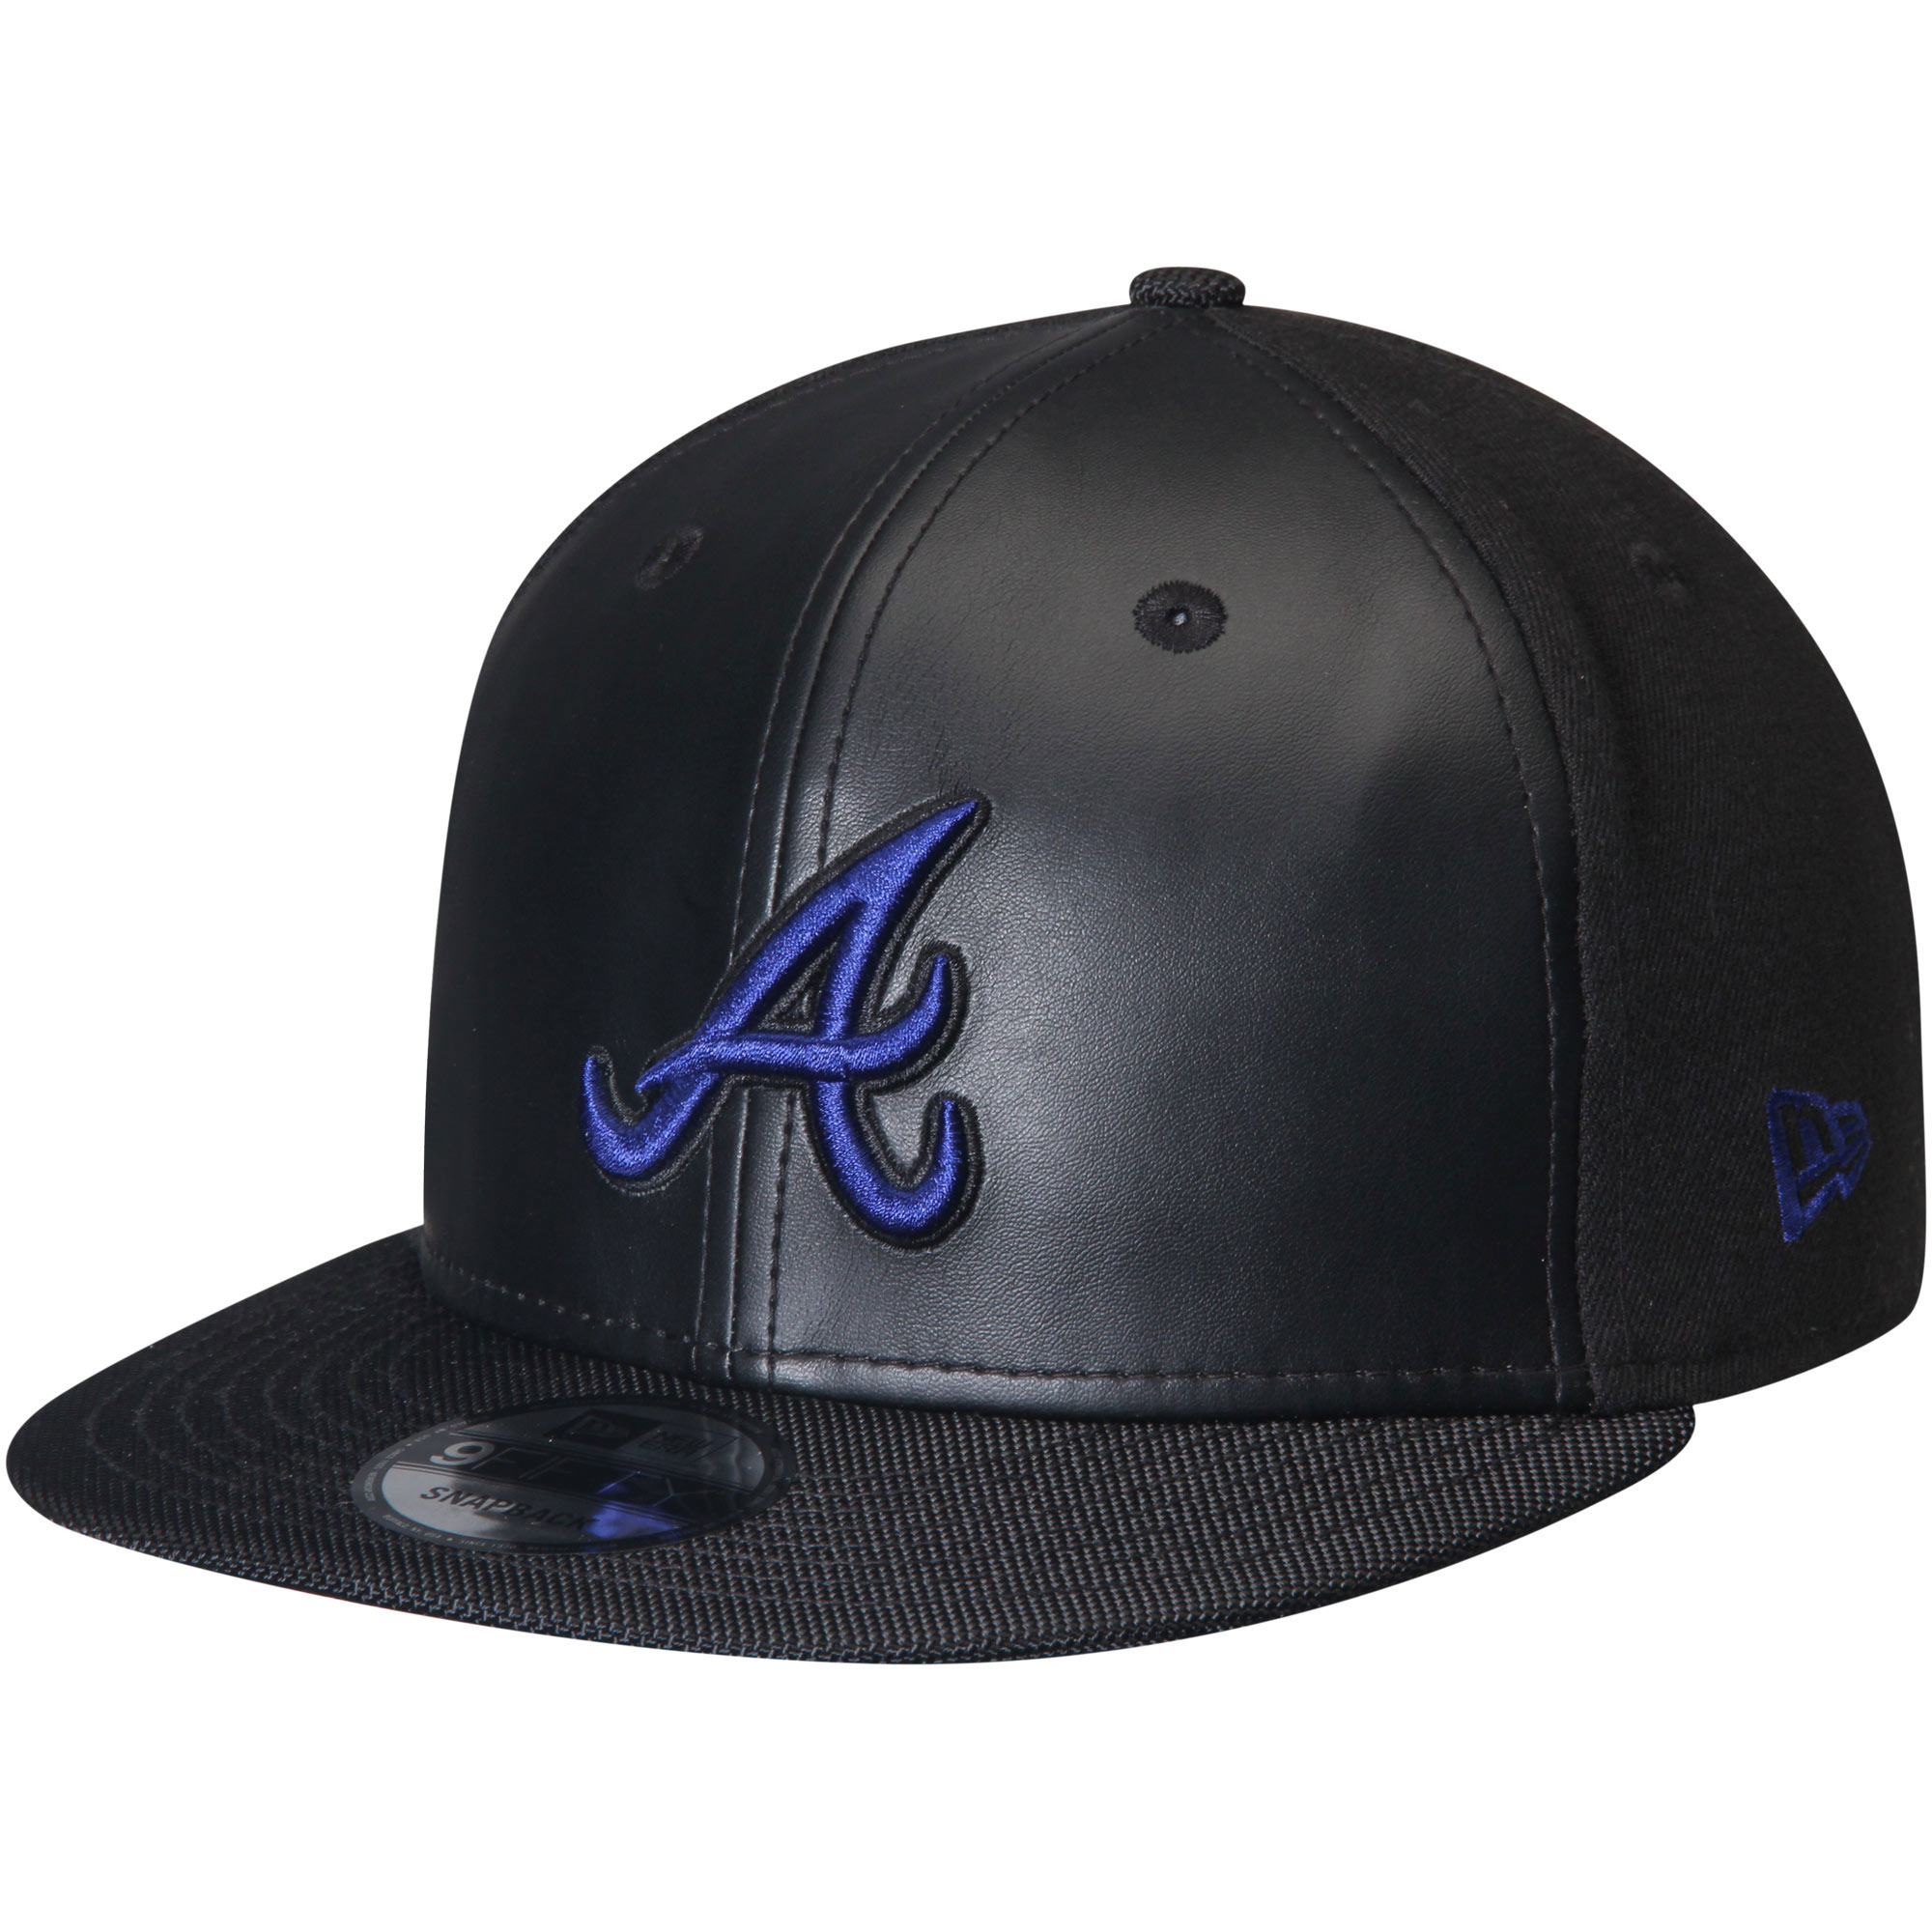 Atlanta Braves New Era Space Hook 9FIFTY Adjustable Snapback Hat - Black - OSFA